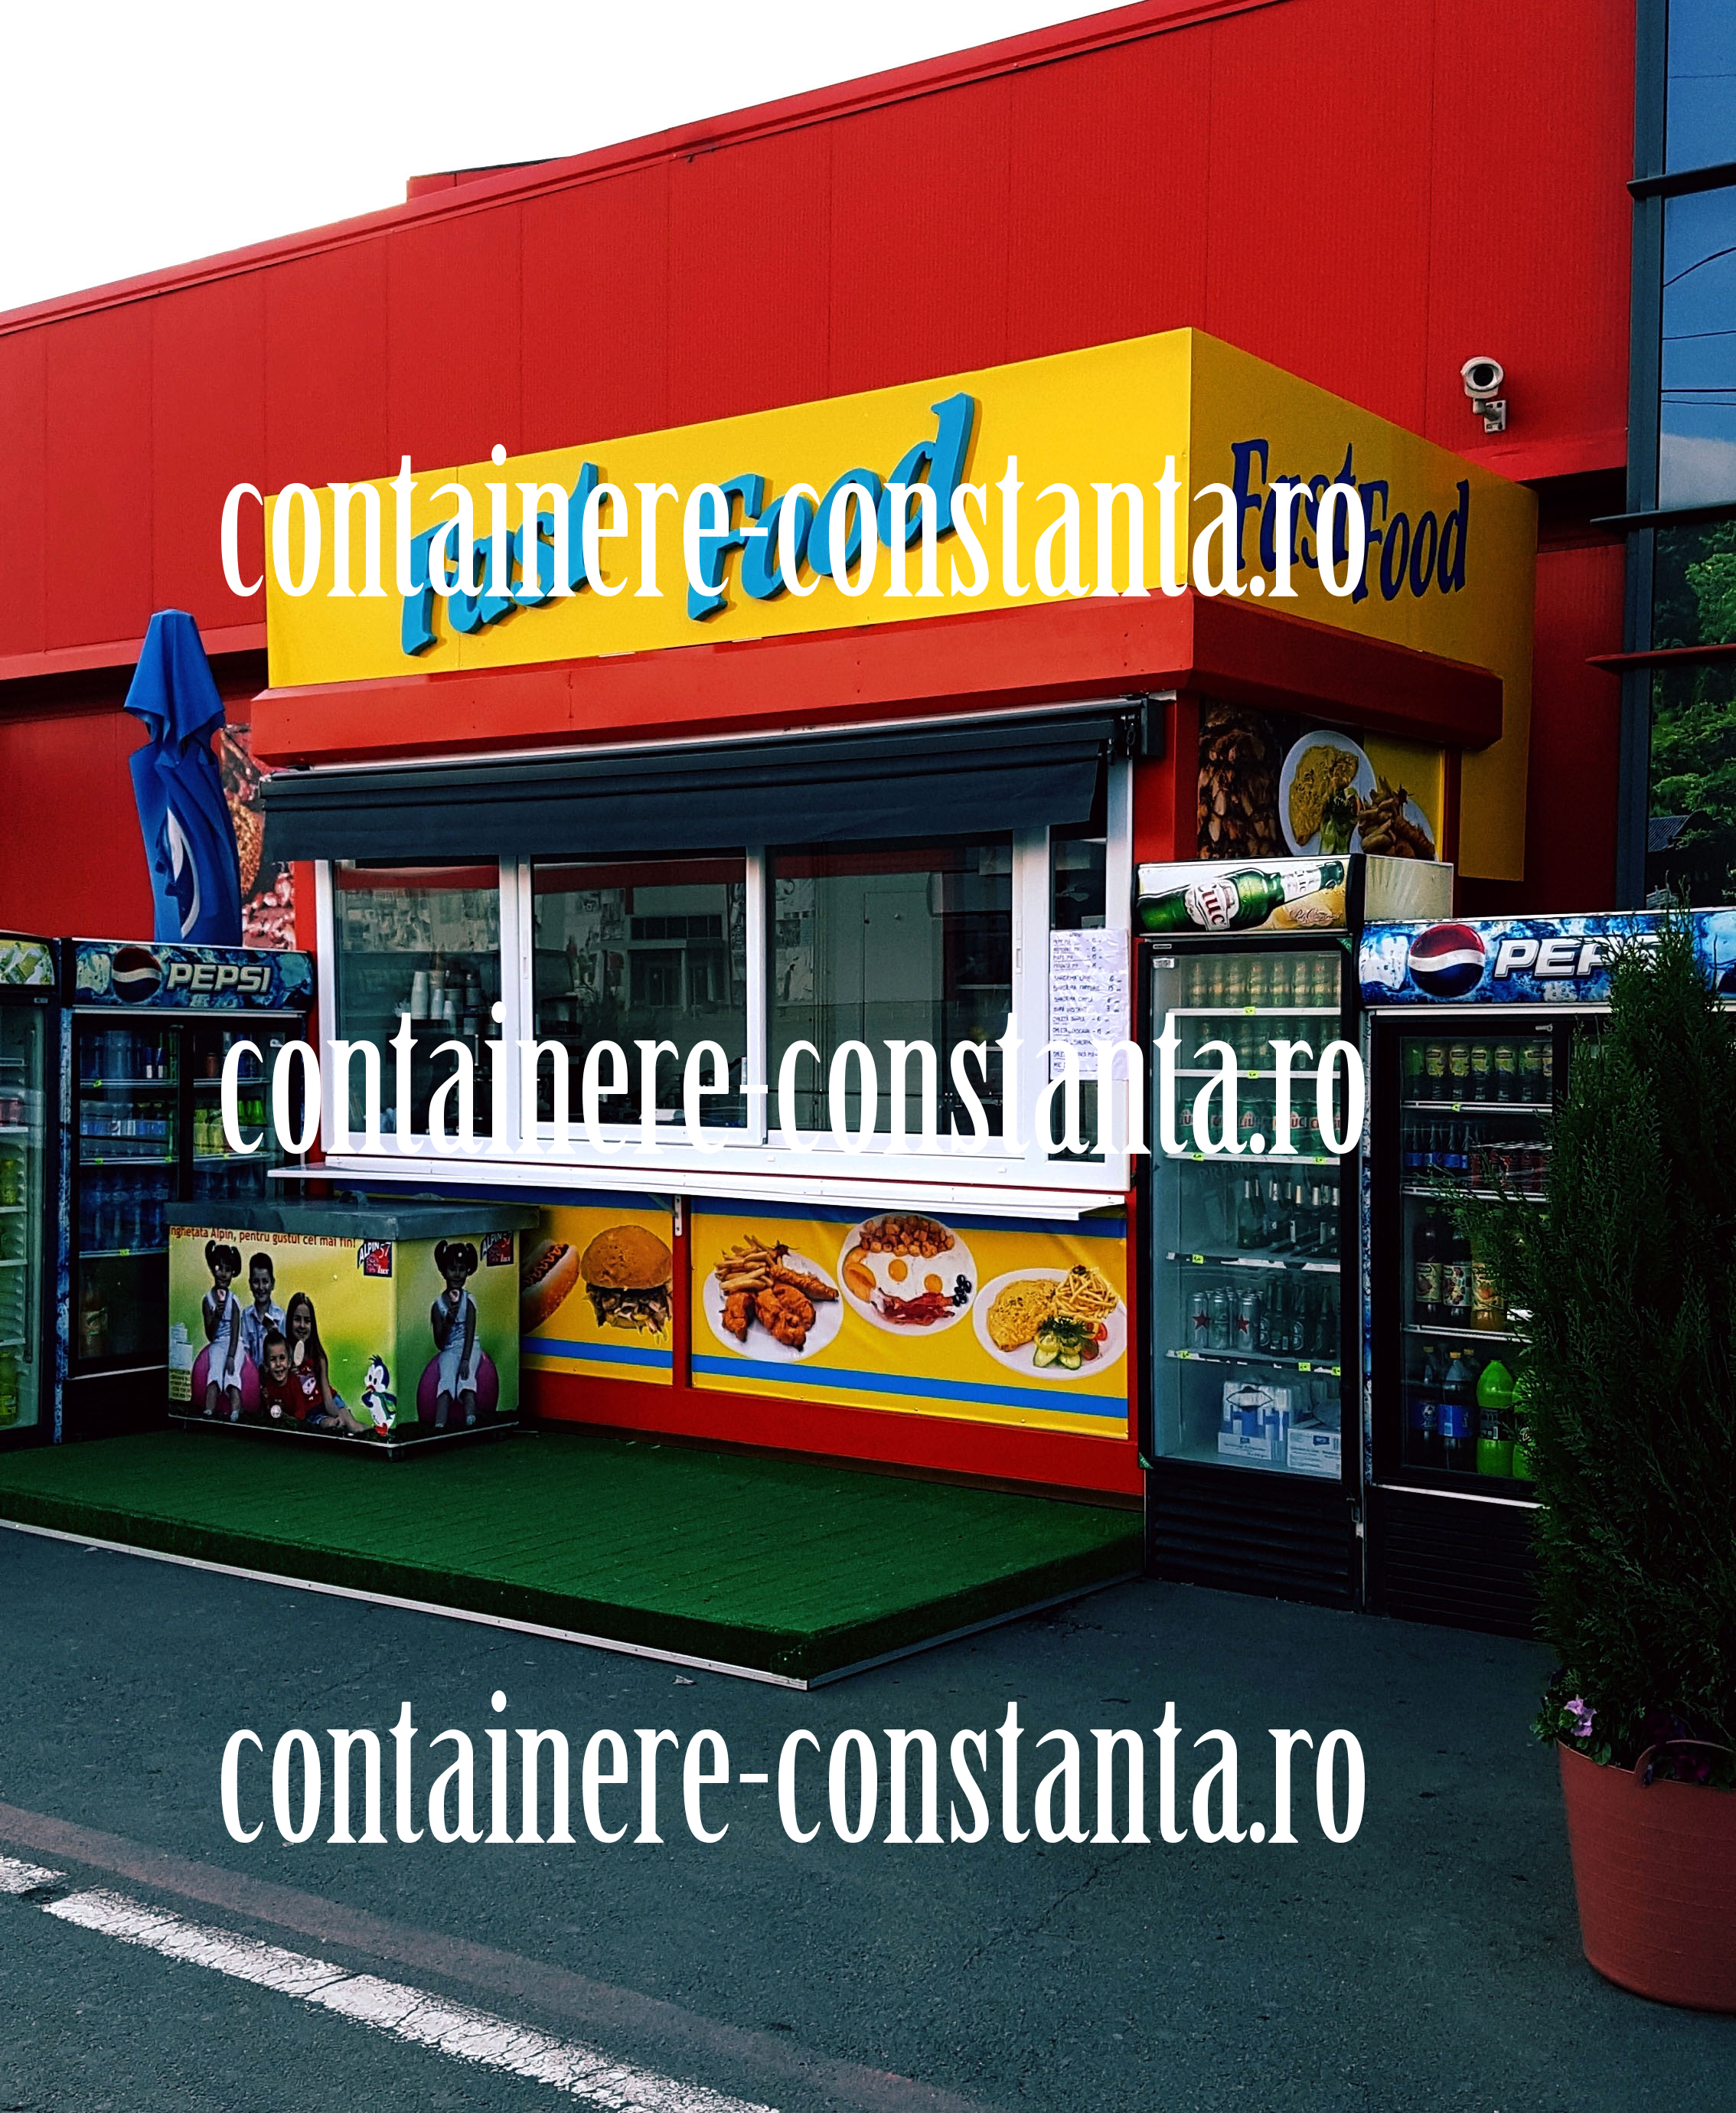 vand container second hand Constanta